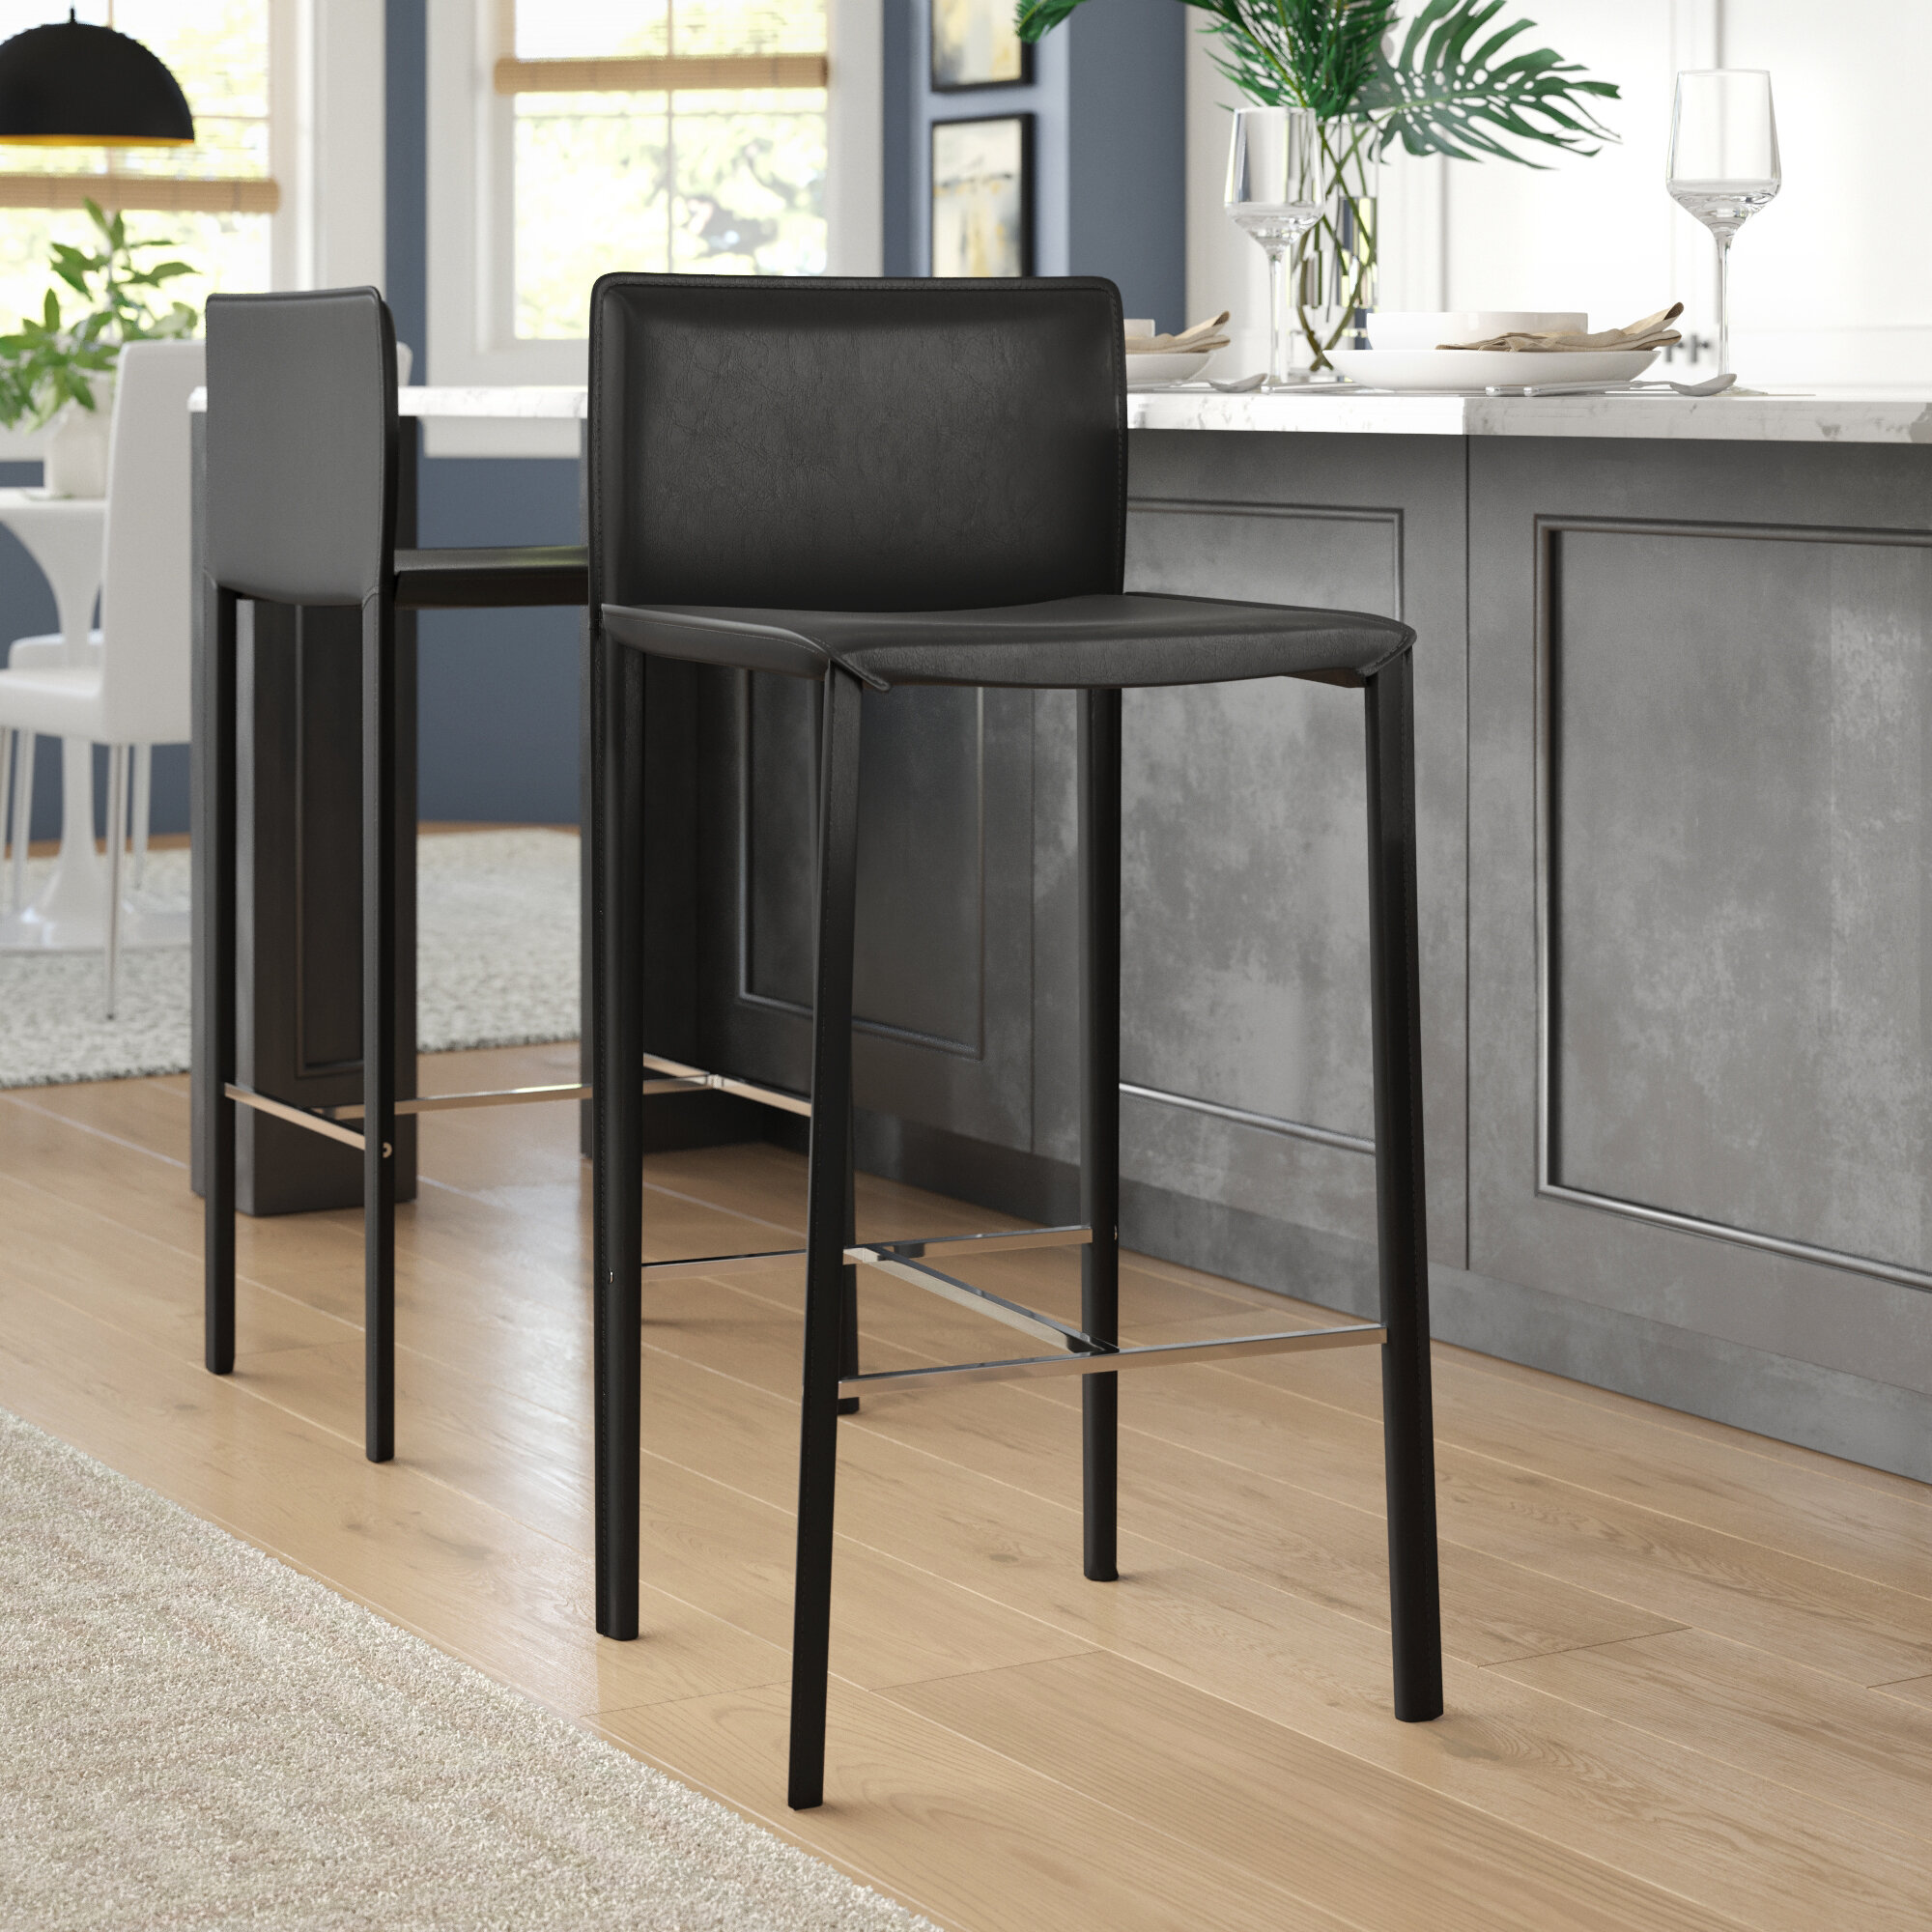 Groovy Brayden Studio Reser 30 Bar Stool Reviews Wayfair Gmtry Best Dining Table And Chair Ideas Images Gmtryco